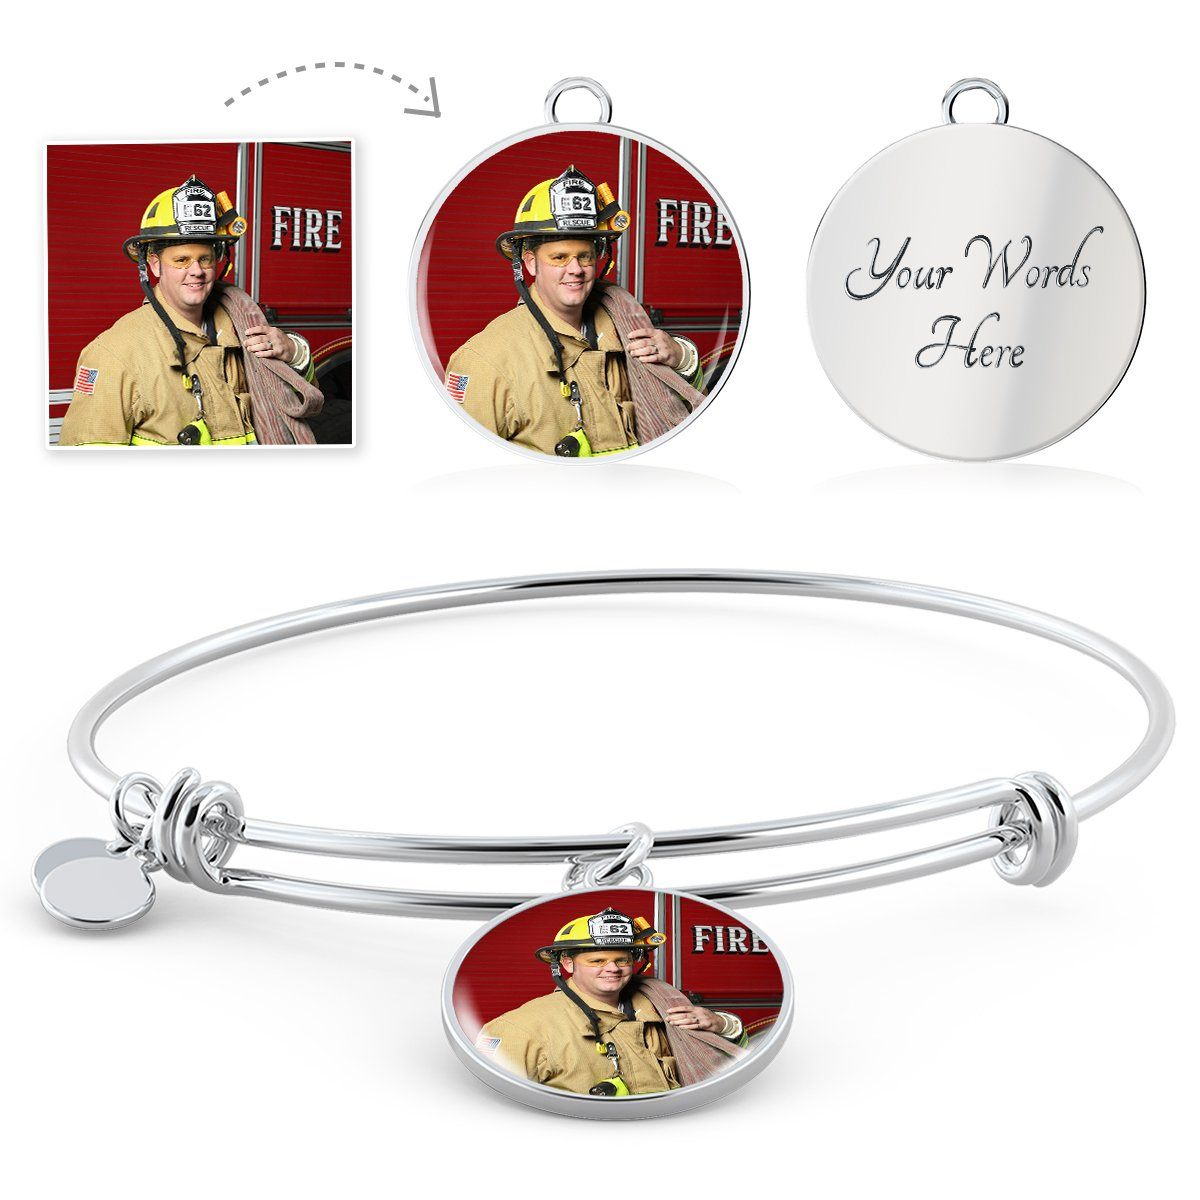 Firefighter Personalized Photo Circle Bangle Bracelet - Heroic Defender